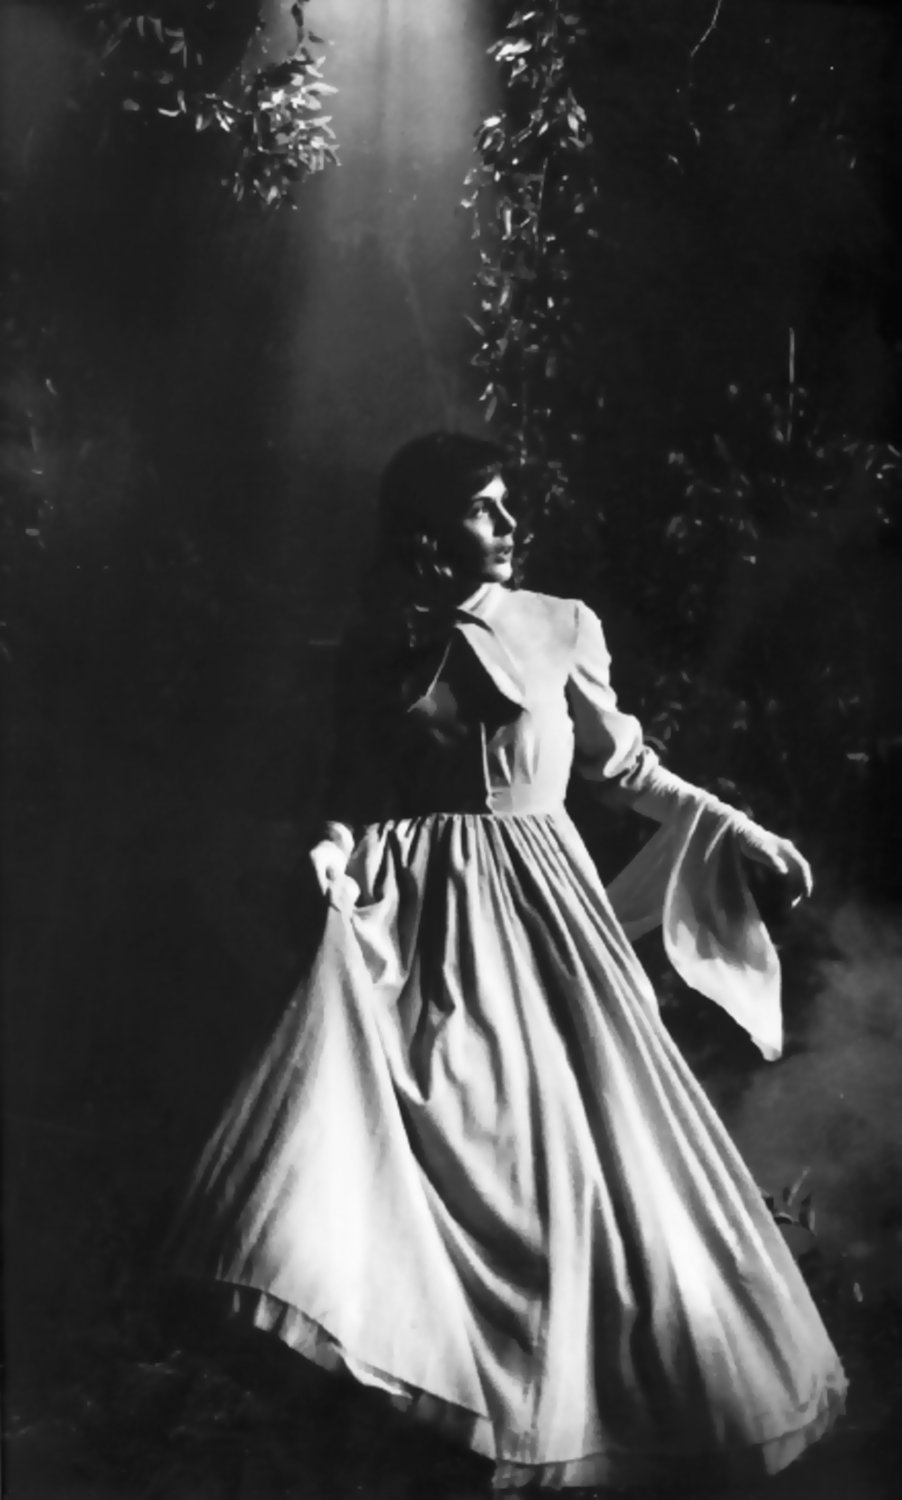 - The Woman in White - I shot this for NBC in 1960, using the available light in the studio. Canon rangefinder camera, 100mm F2.0 lens, 1/30 sec F2.8, Tri-X film. - Tony Karp, design, art, photography, techno-impressionist, techno-impressionism, aerial photography , drone , drones , dji , mavic pro , video , 3D printing - Books -